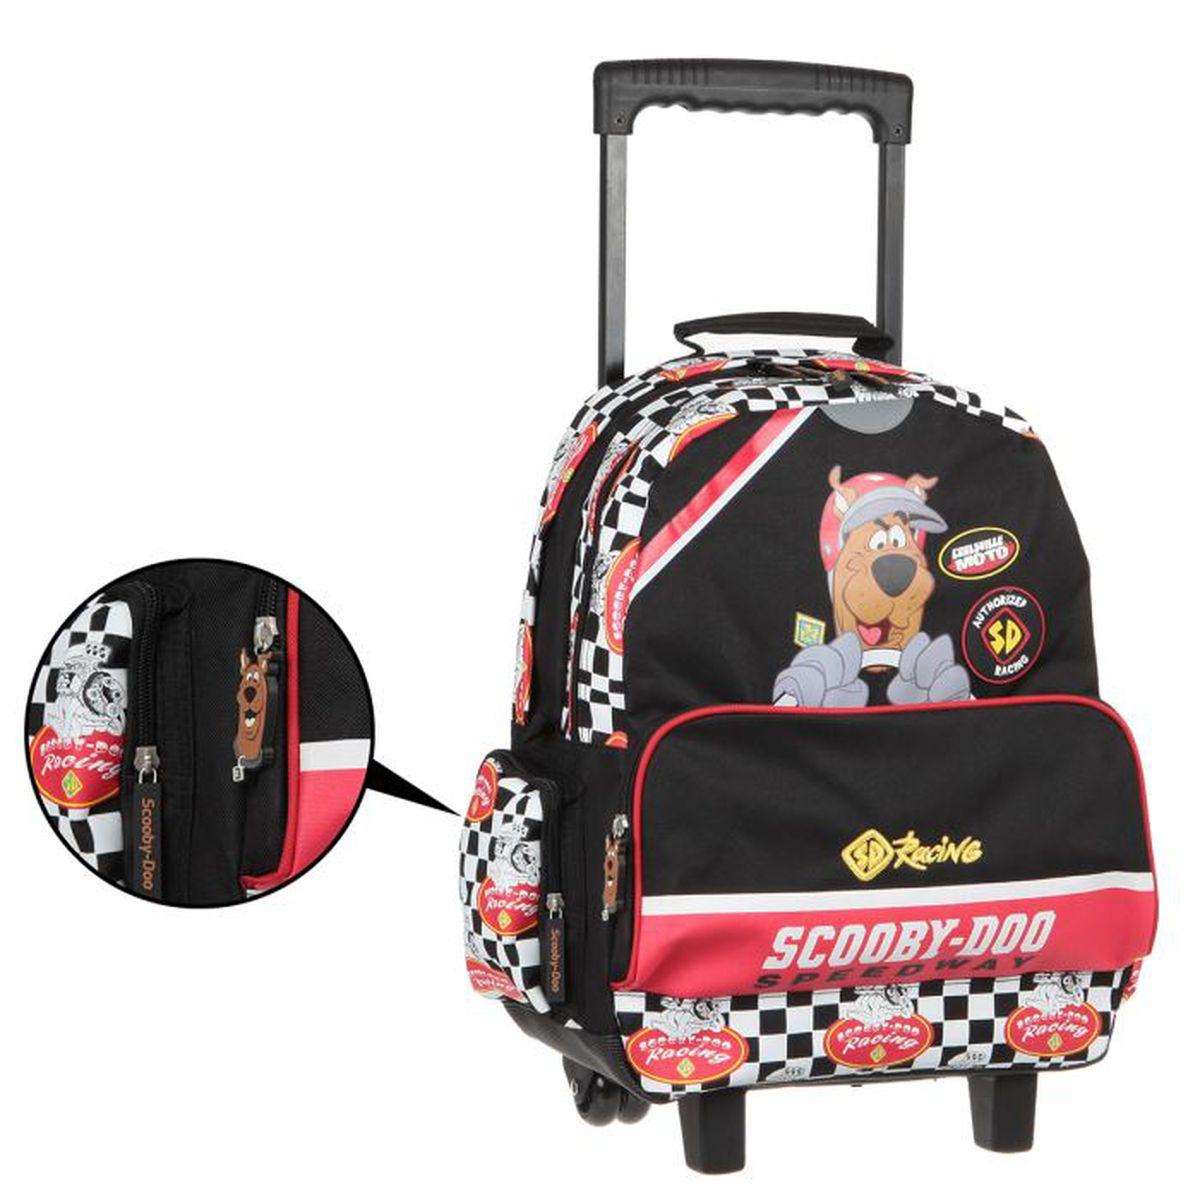 scooby doo sac dos roulettes enfant gar on noir et rouge achat vente sac dos. Black Bedroom Furniture Sets. Home Design Ideas